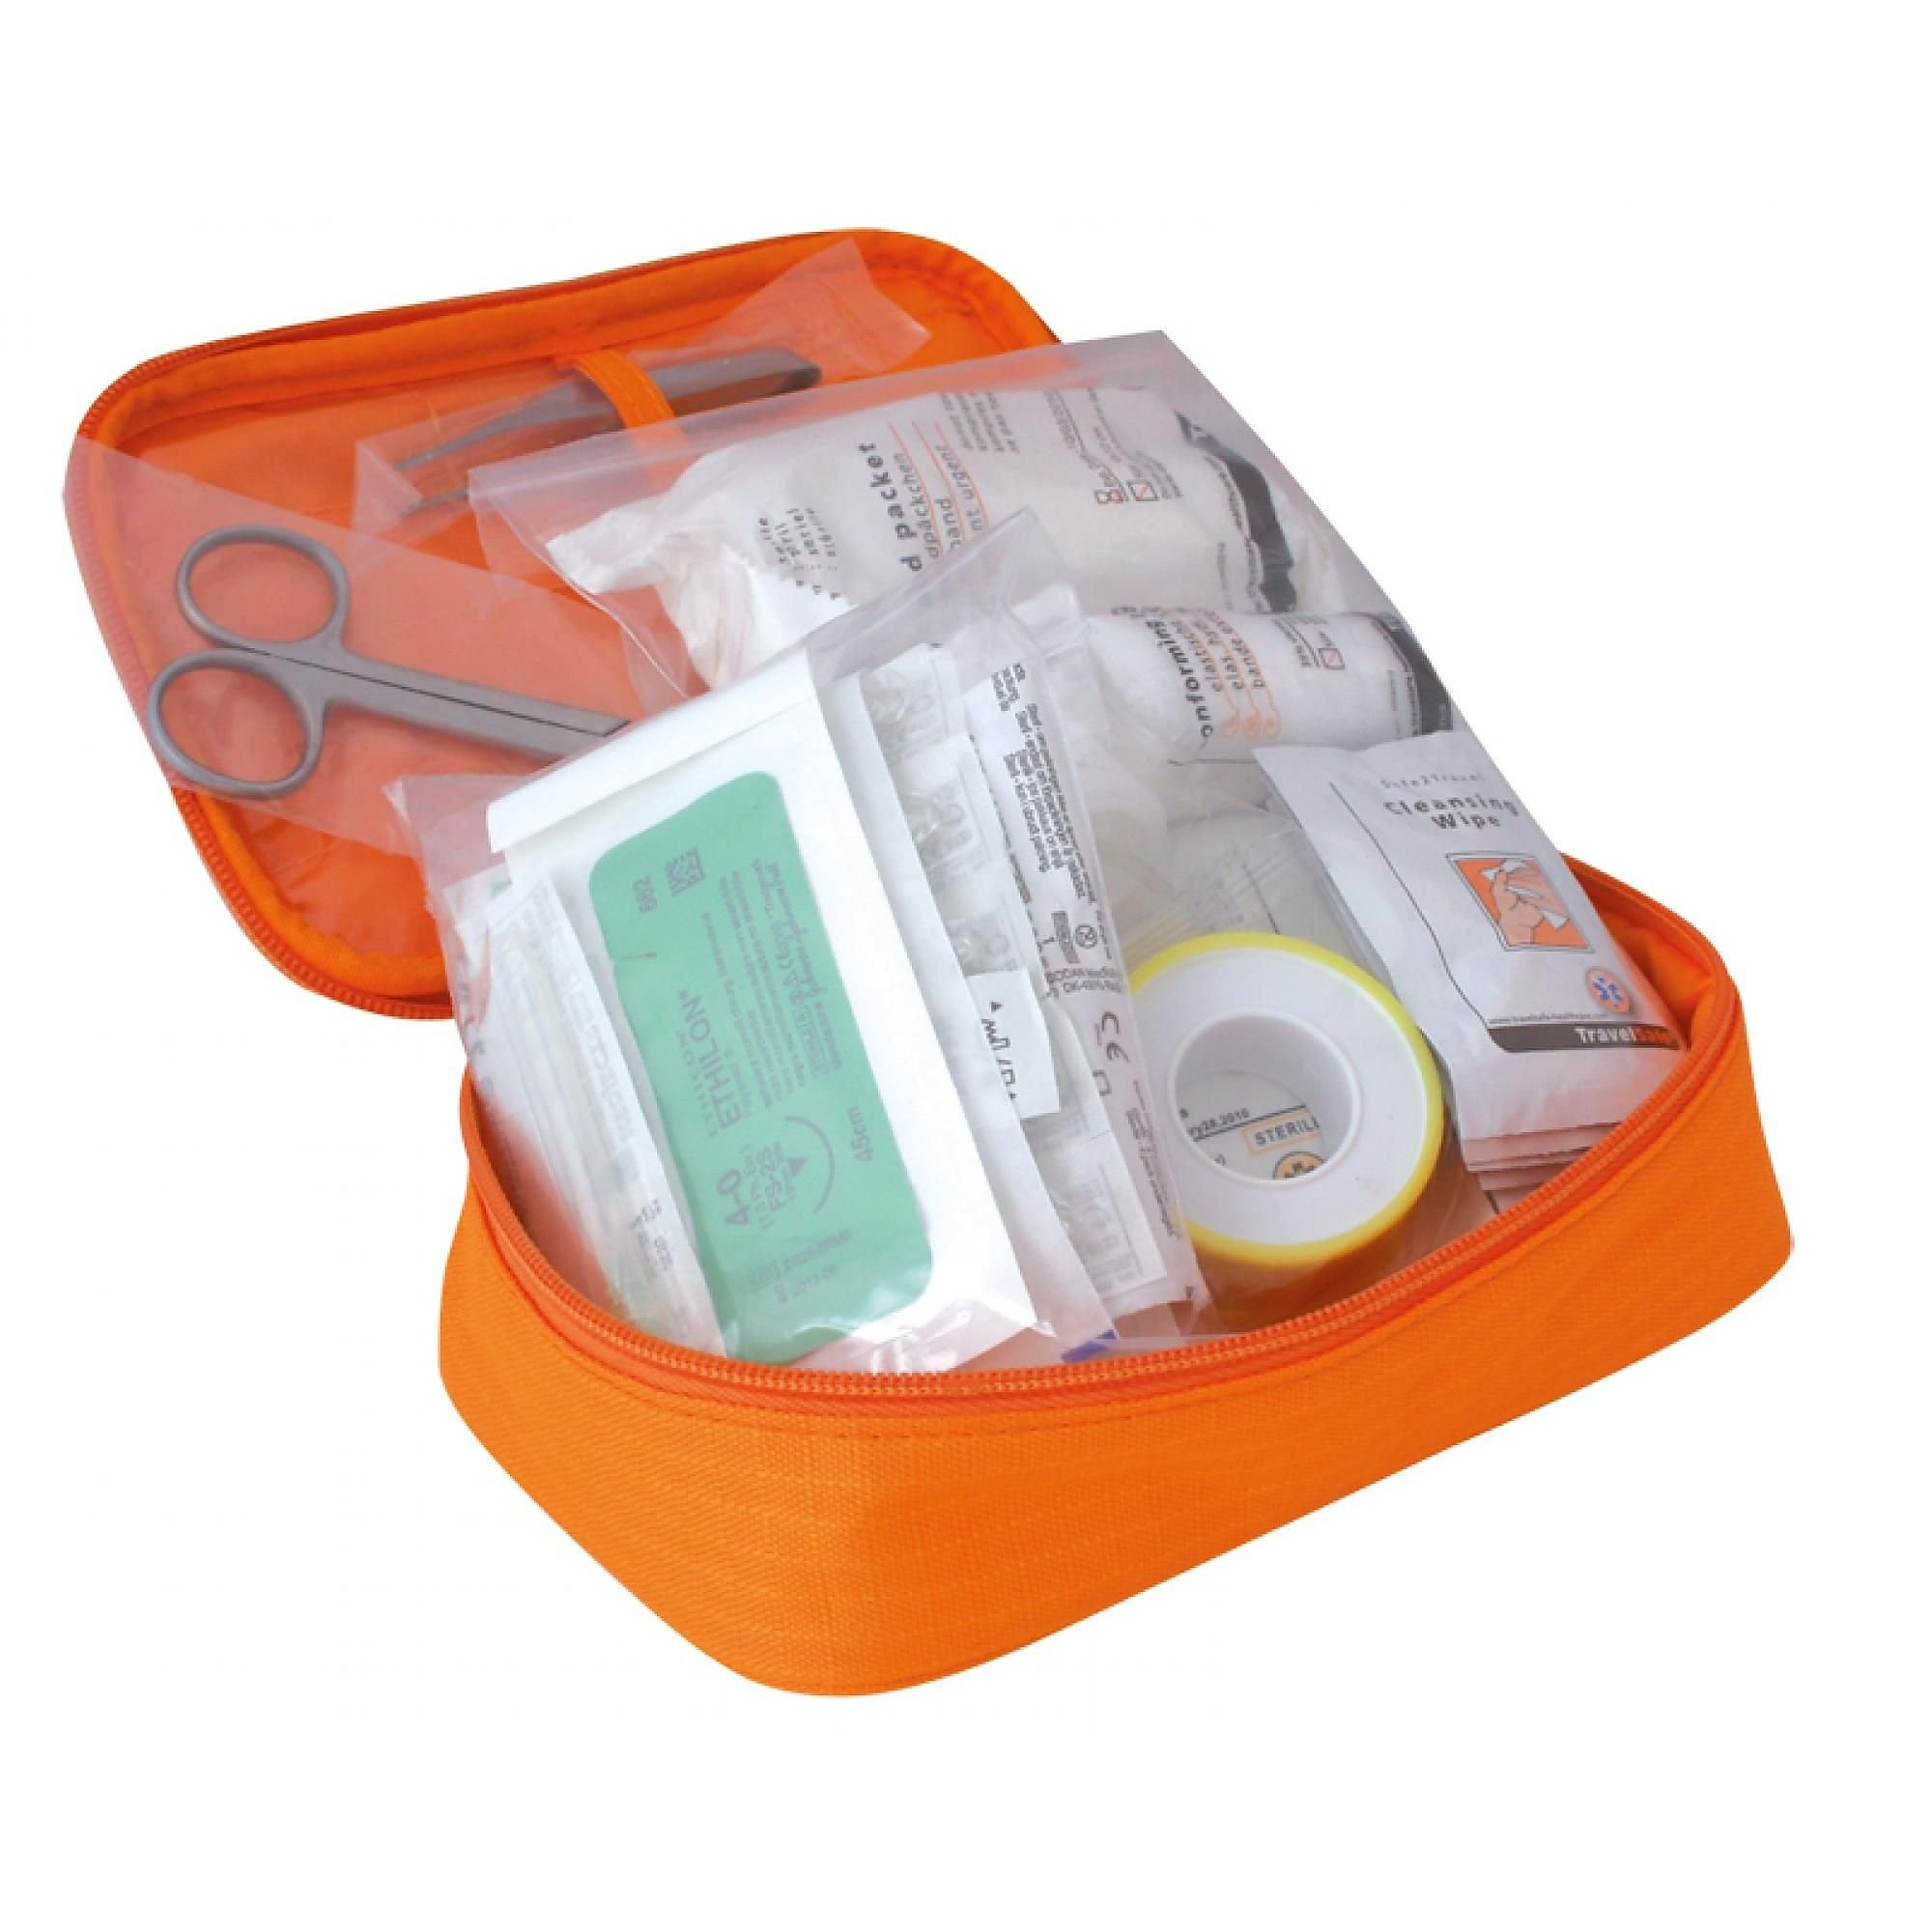 TRAVELSAFE EMERGENCY KIT